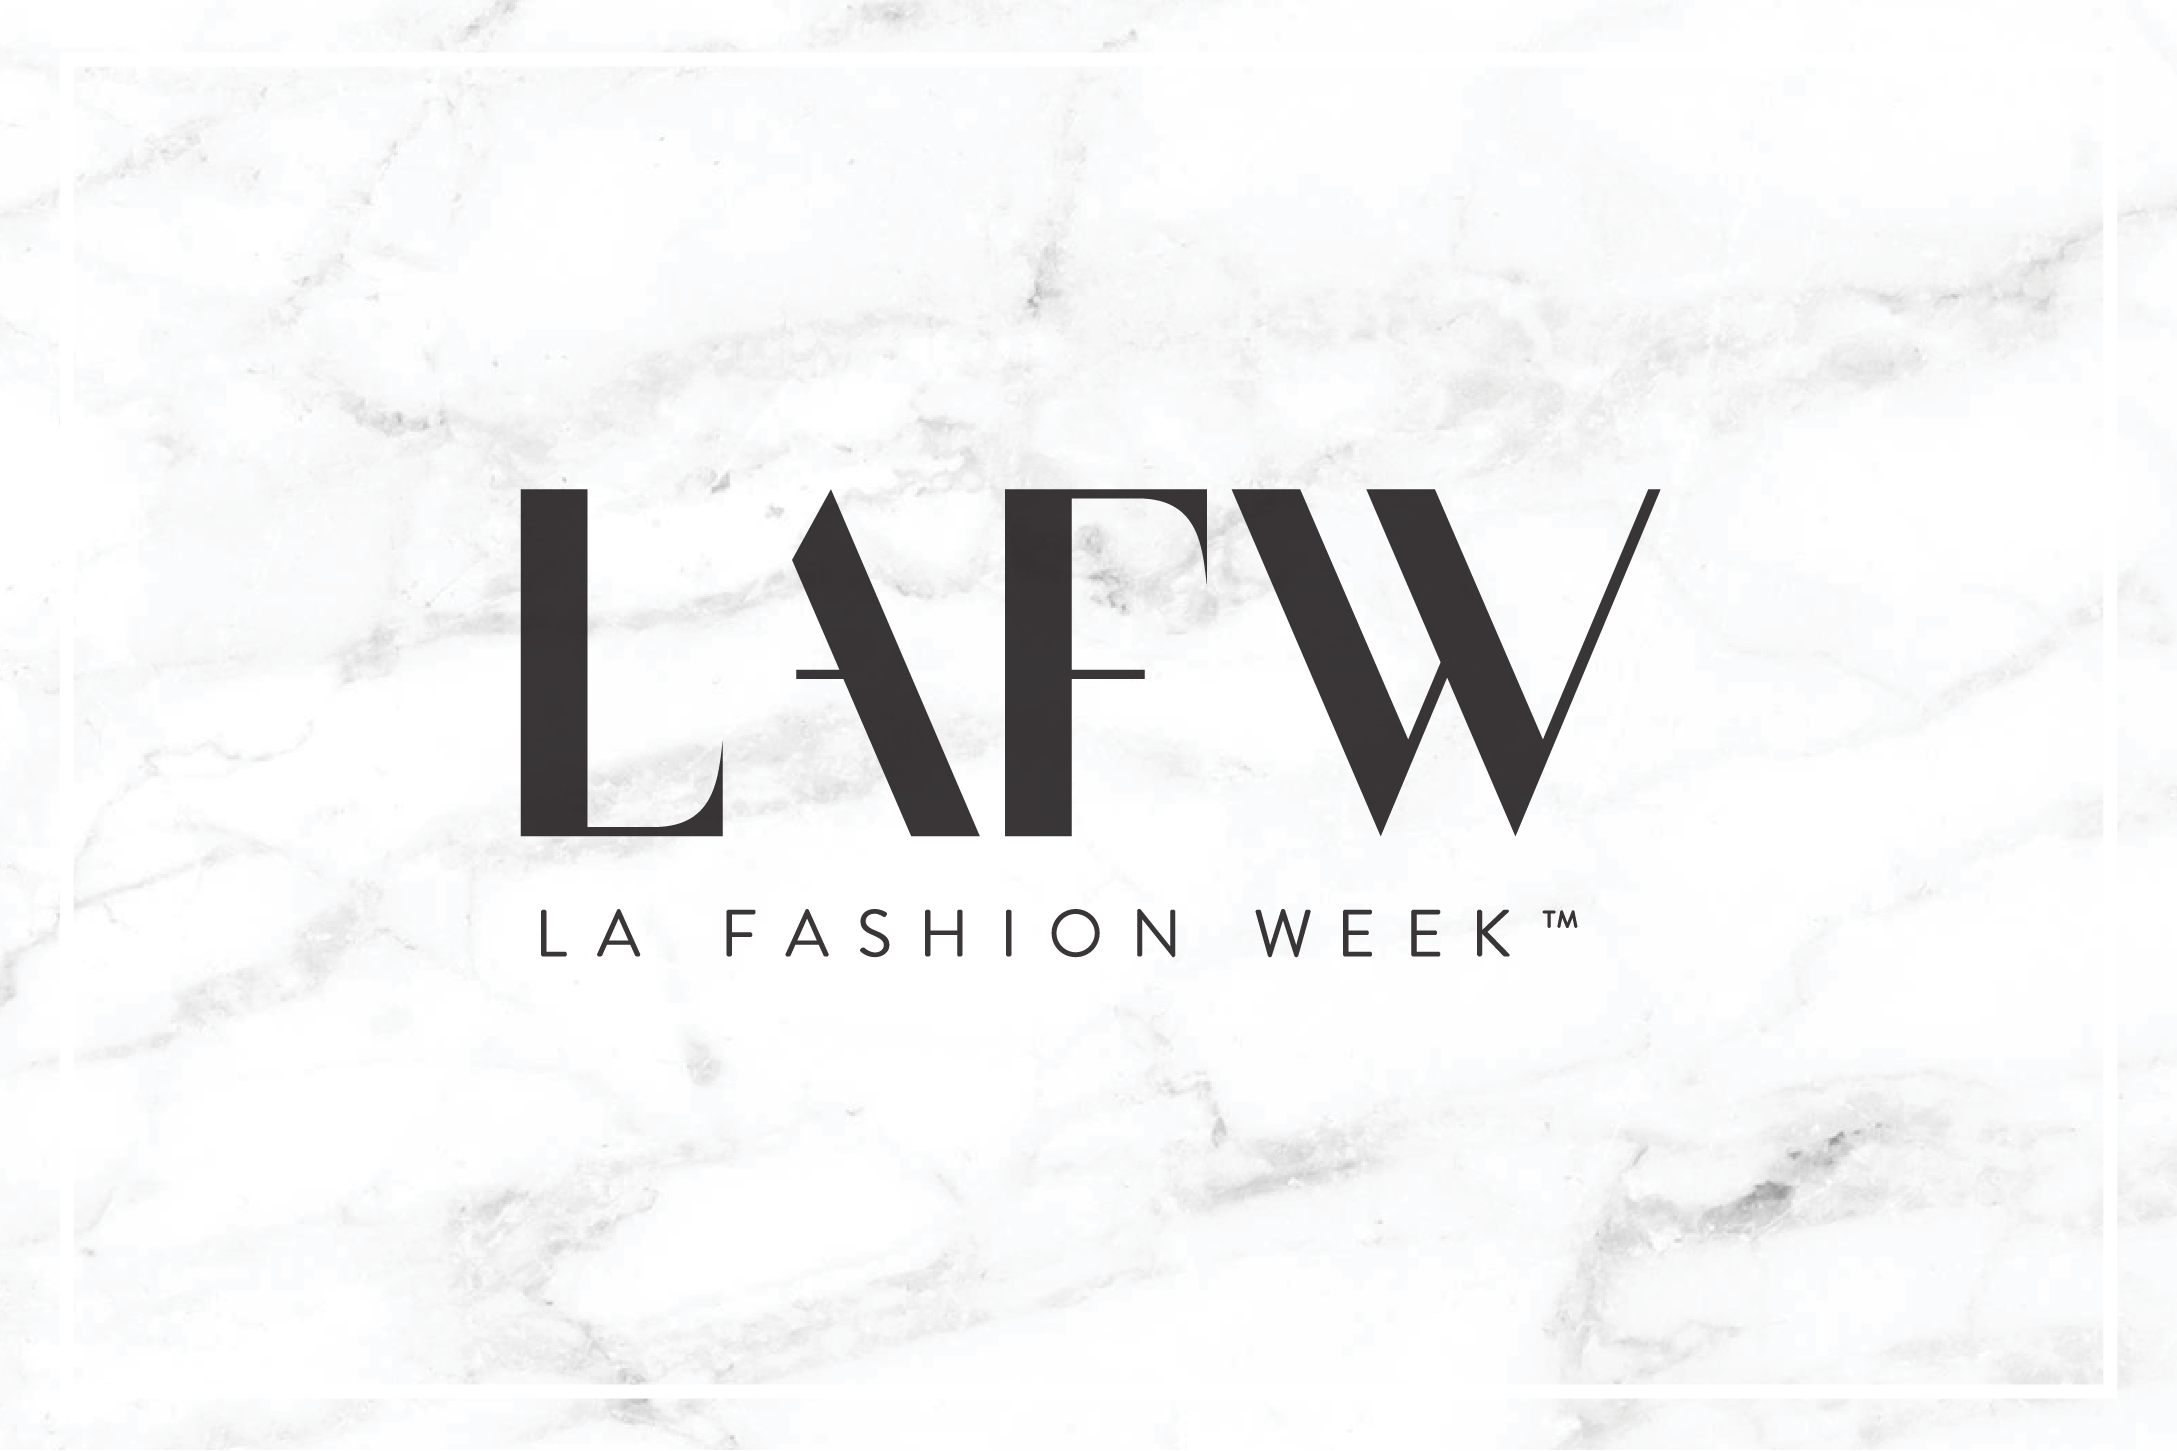 Miss-Kathy-Ramirez-Brand-Development-LA-Fashion-Week